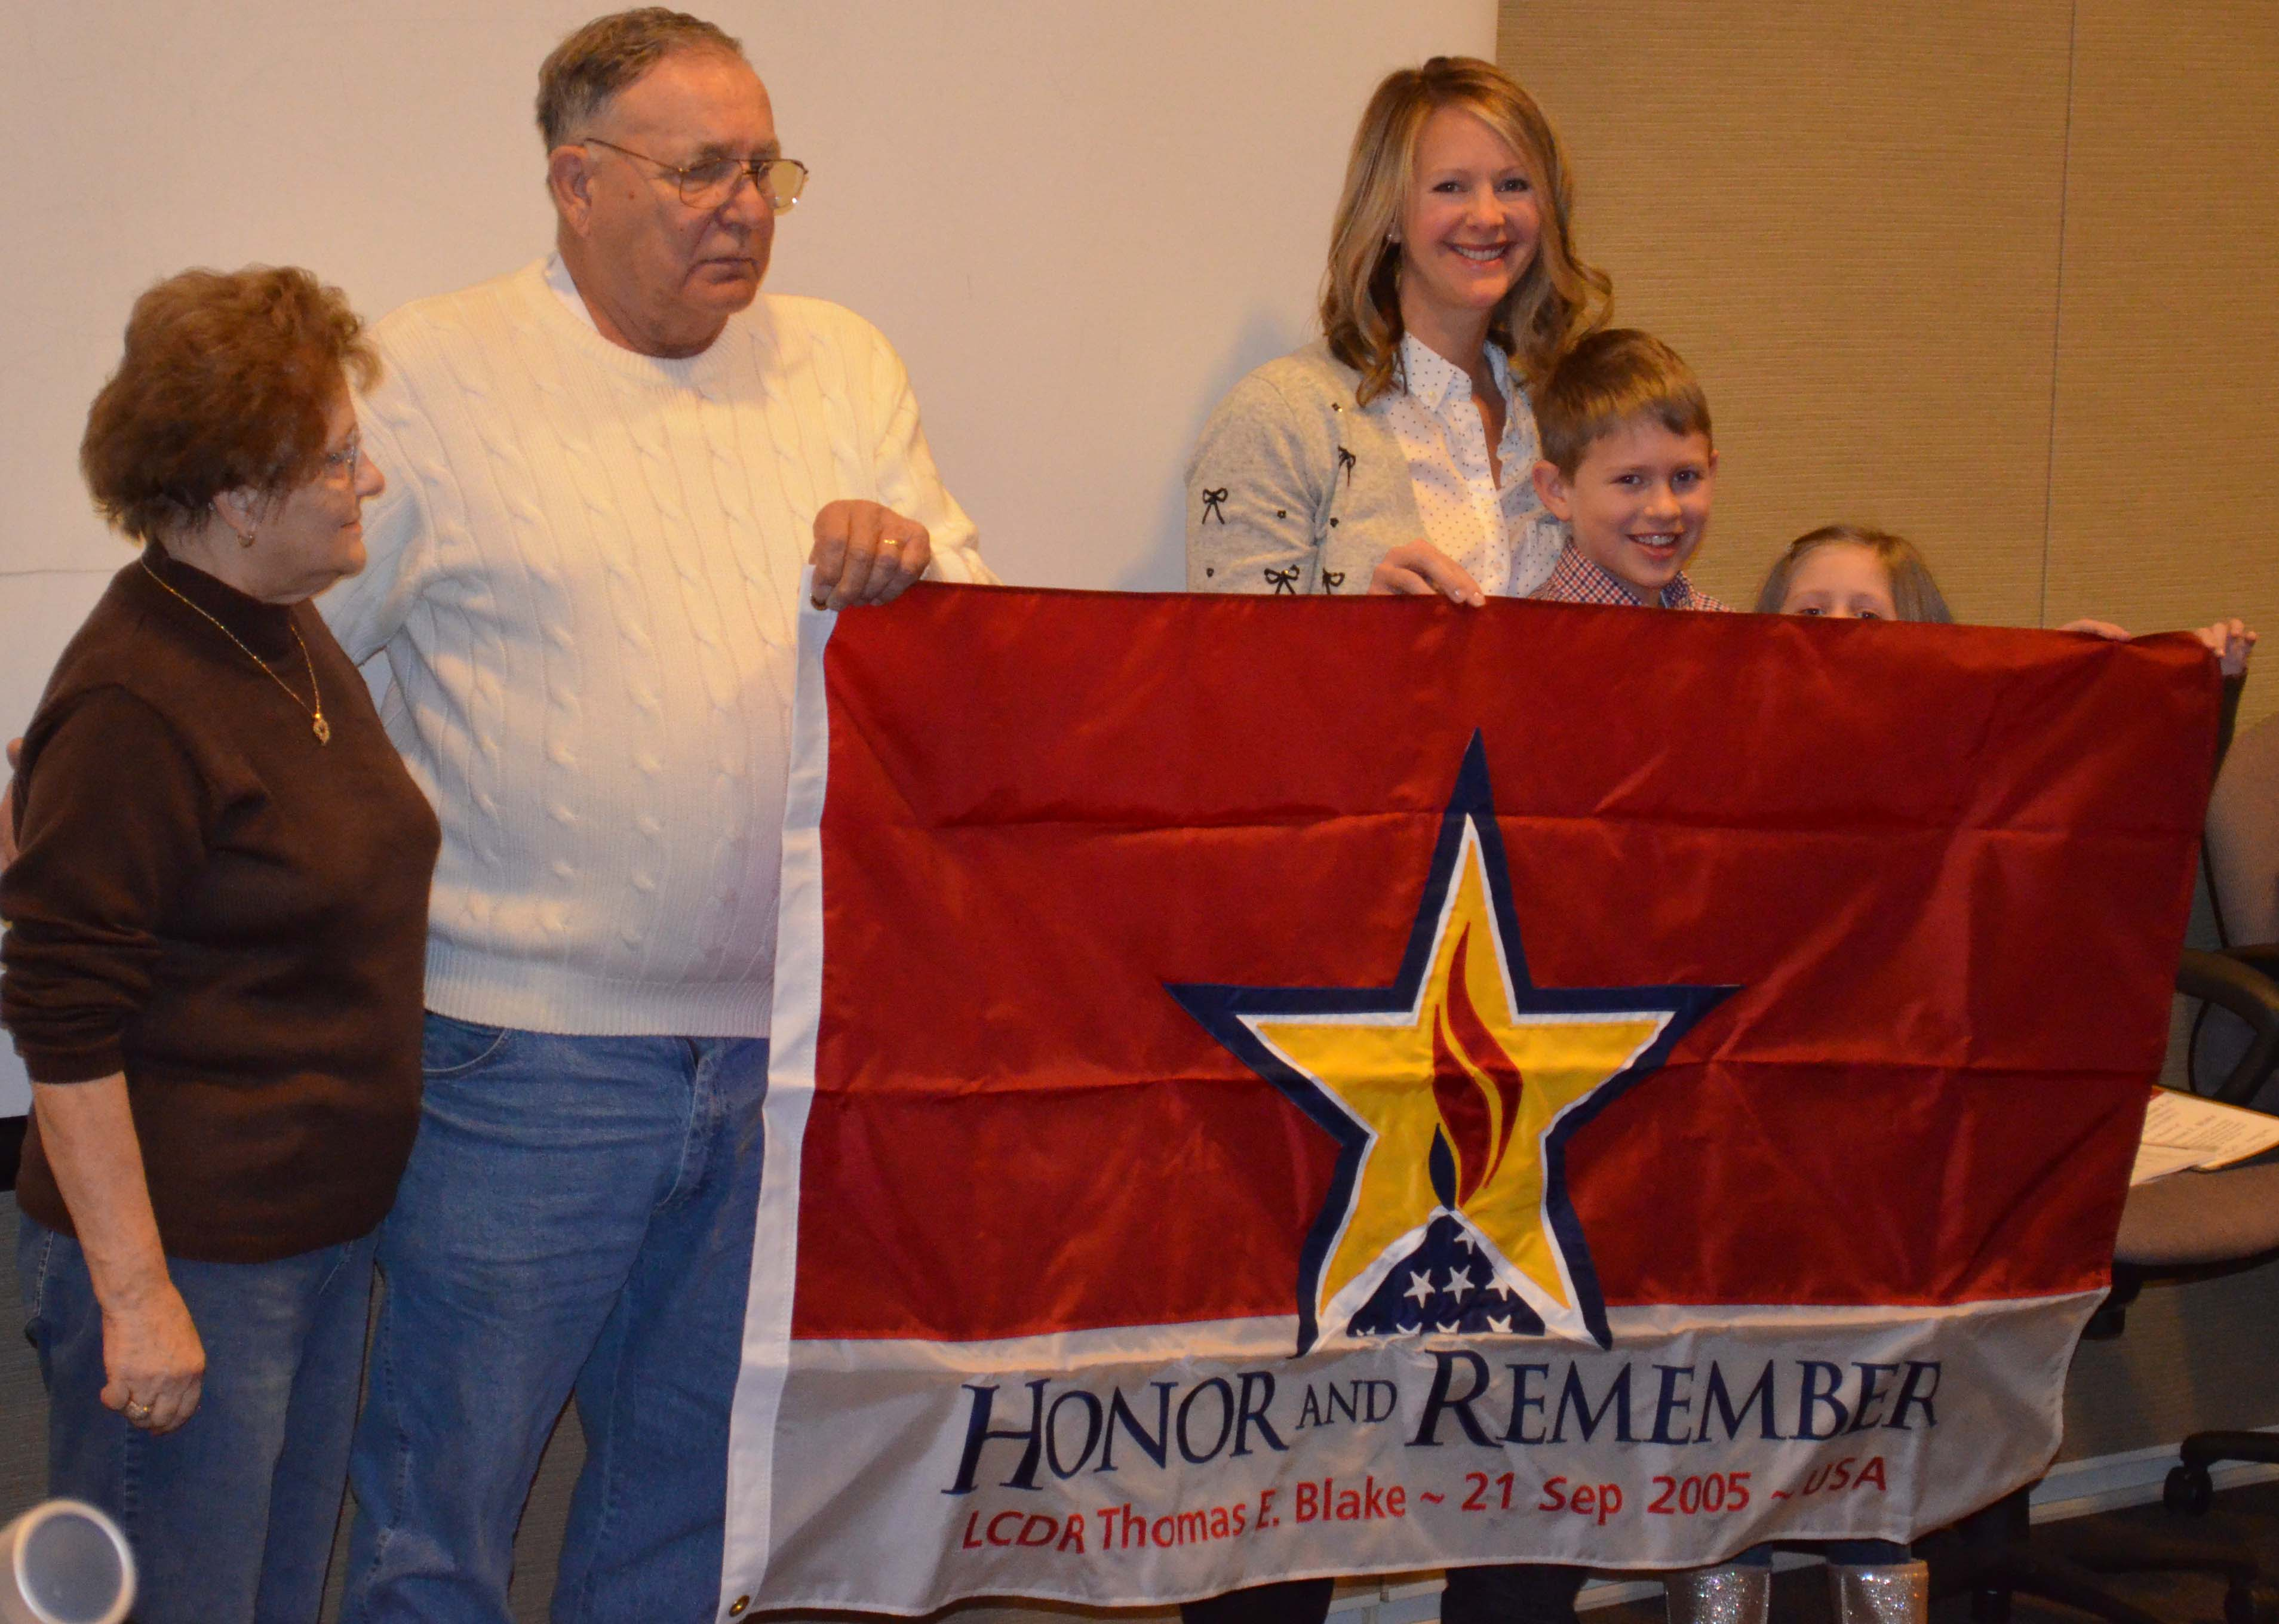 UNMC nursing student Jessica Blake, third from left, holds a flag that honors her husband, Thomas, a Navy pilot who died in the line of duty. With her are her husband's parents, Carole and Tom, and her children, Tommy and Lily.